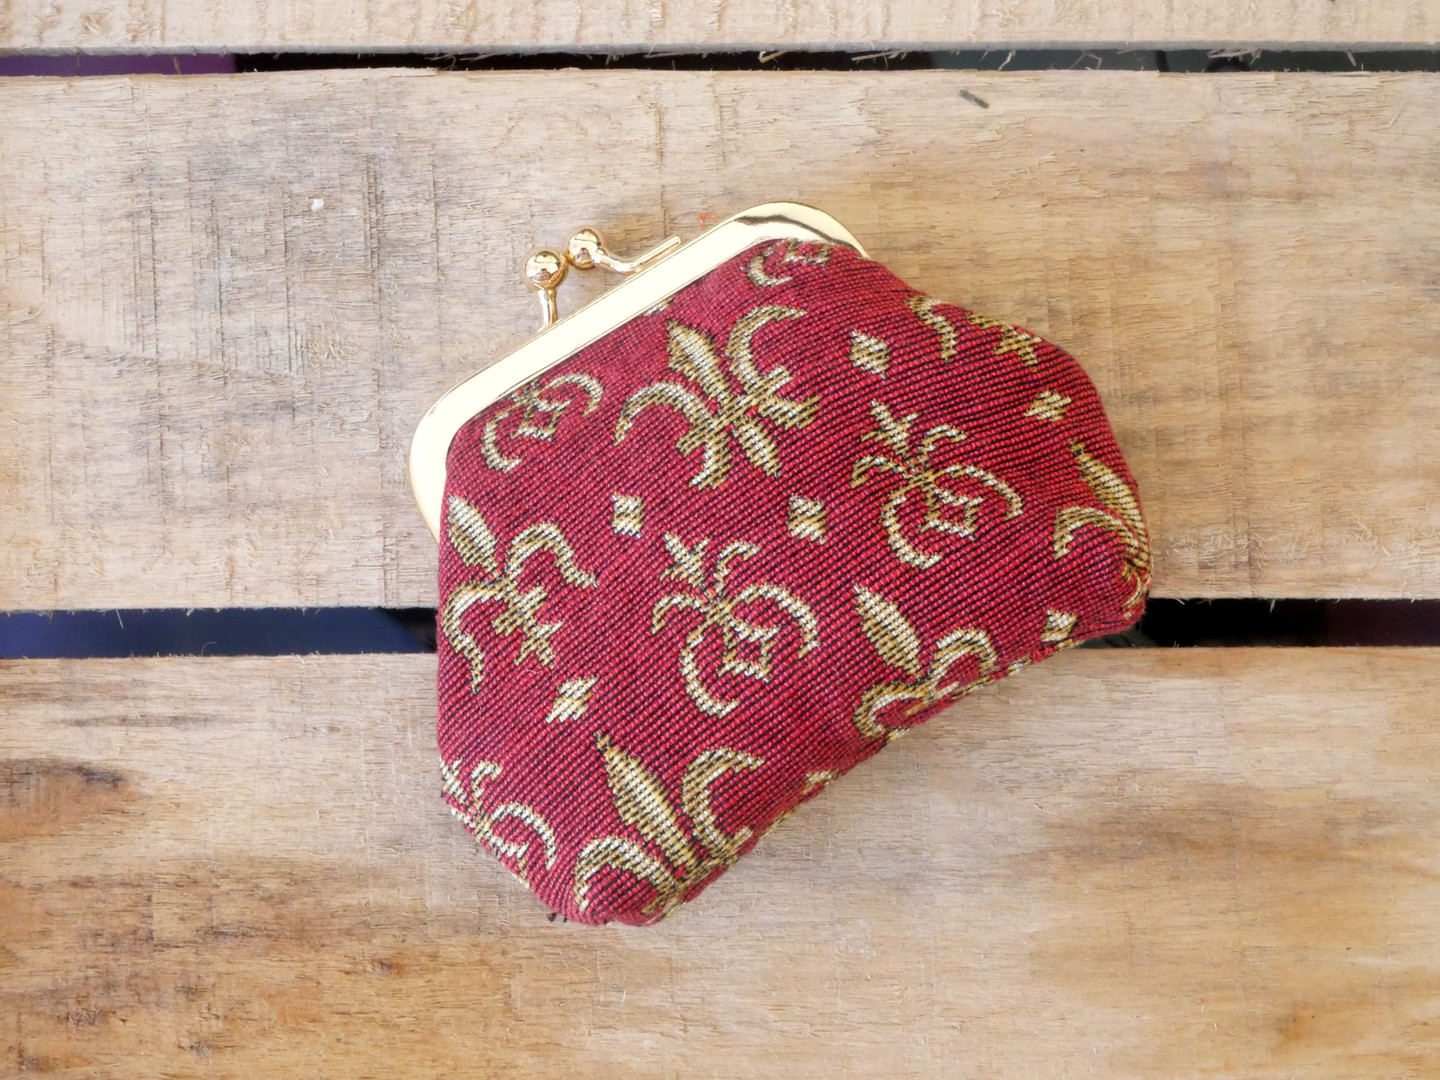 "Porte-monnaie retro de la collection ""Fleurs de lys rouge"" (ref 402.83) Royal Tapisserie / coin purse tapestry"